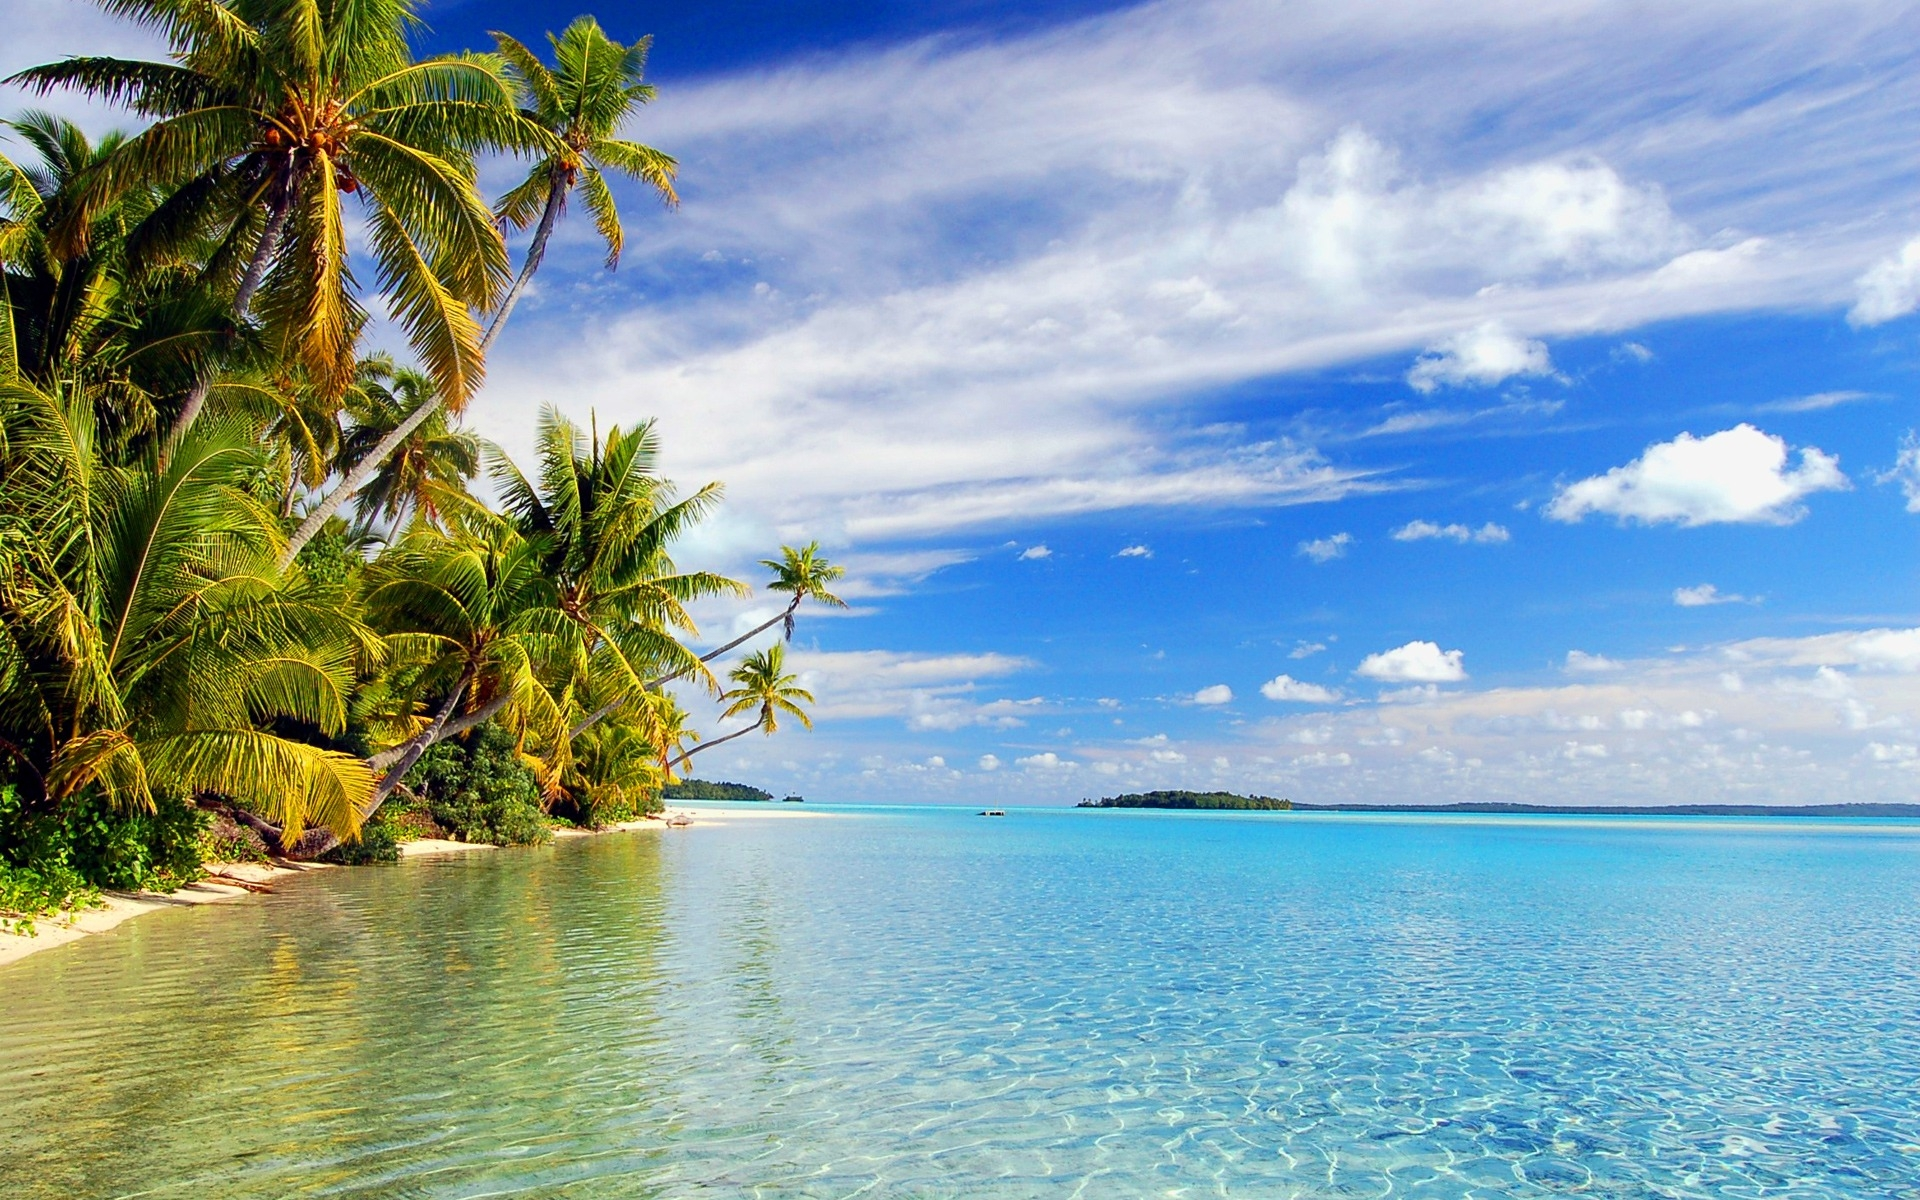 tropical, wallpaper, beach, island, wallpapers, paradise, reflections